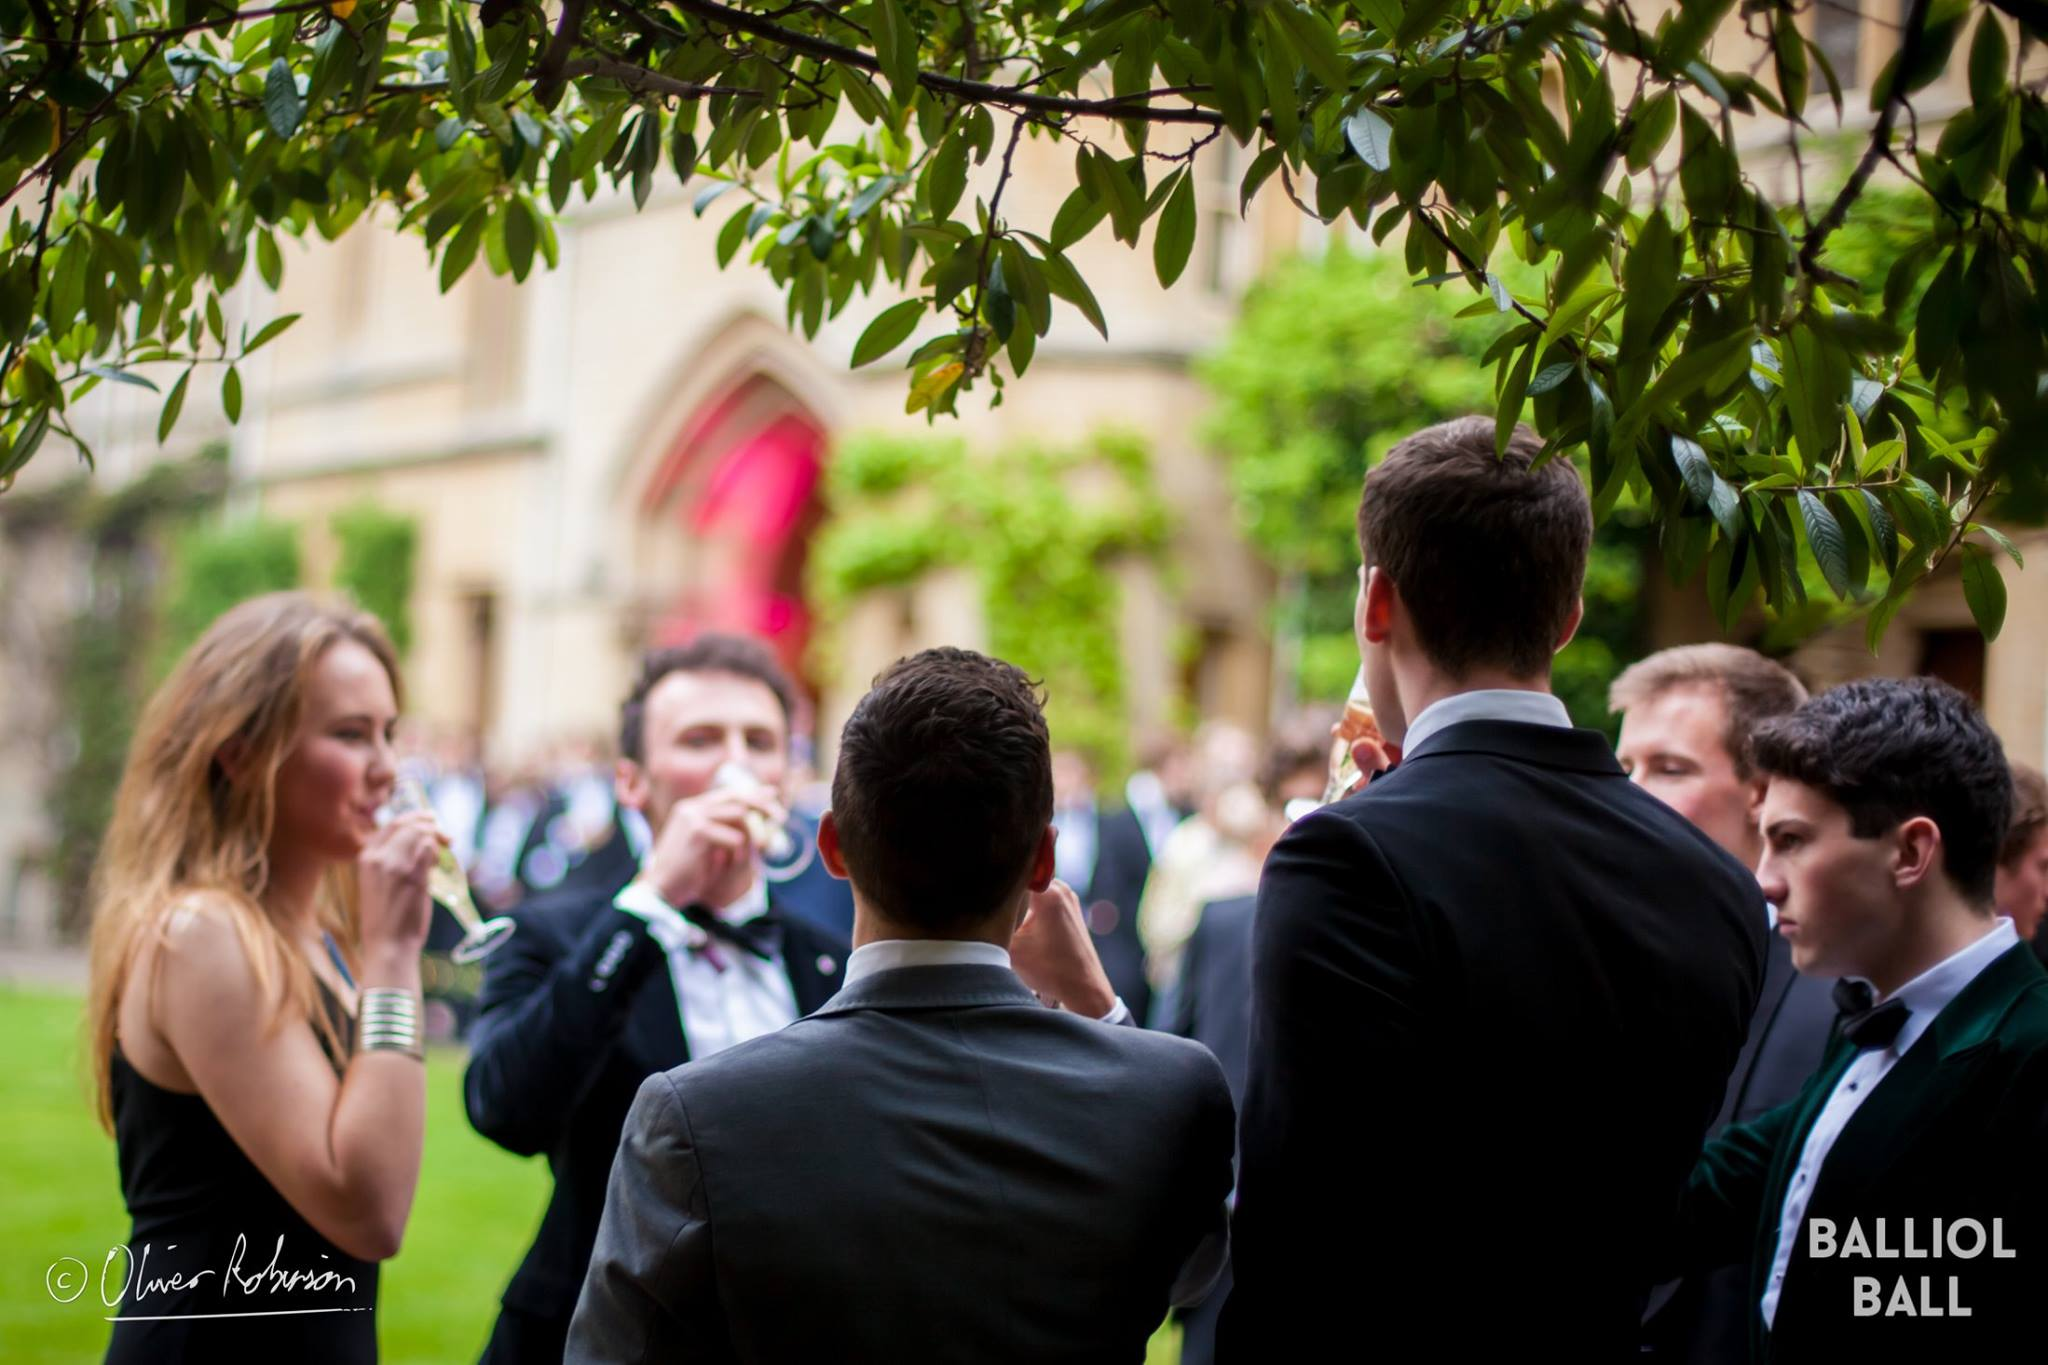 Balliol Ball 2017 (photo by Oliver Robinson Photography)